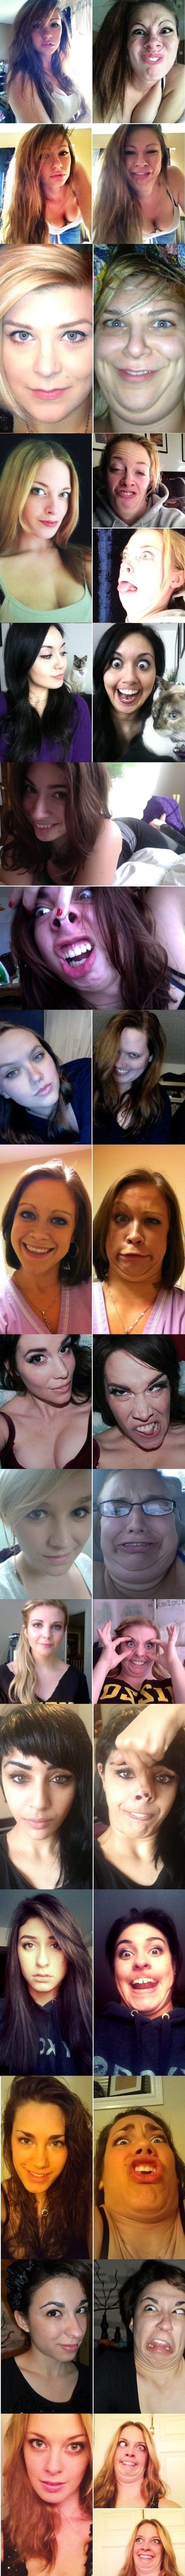 funny-picture-girls-faces-before-after